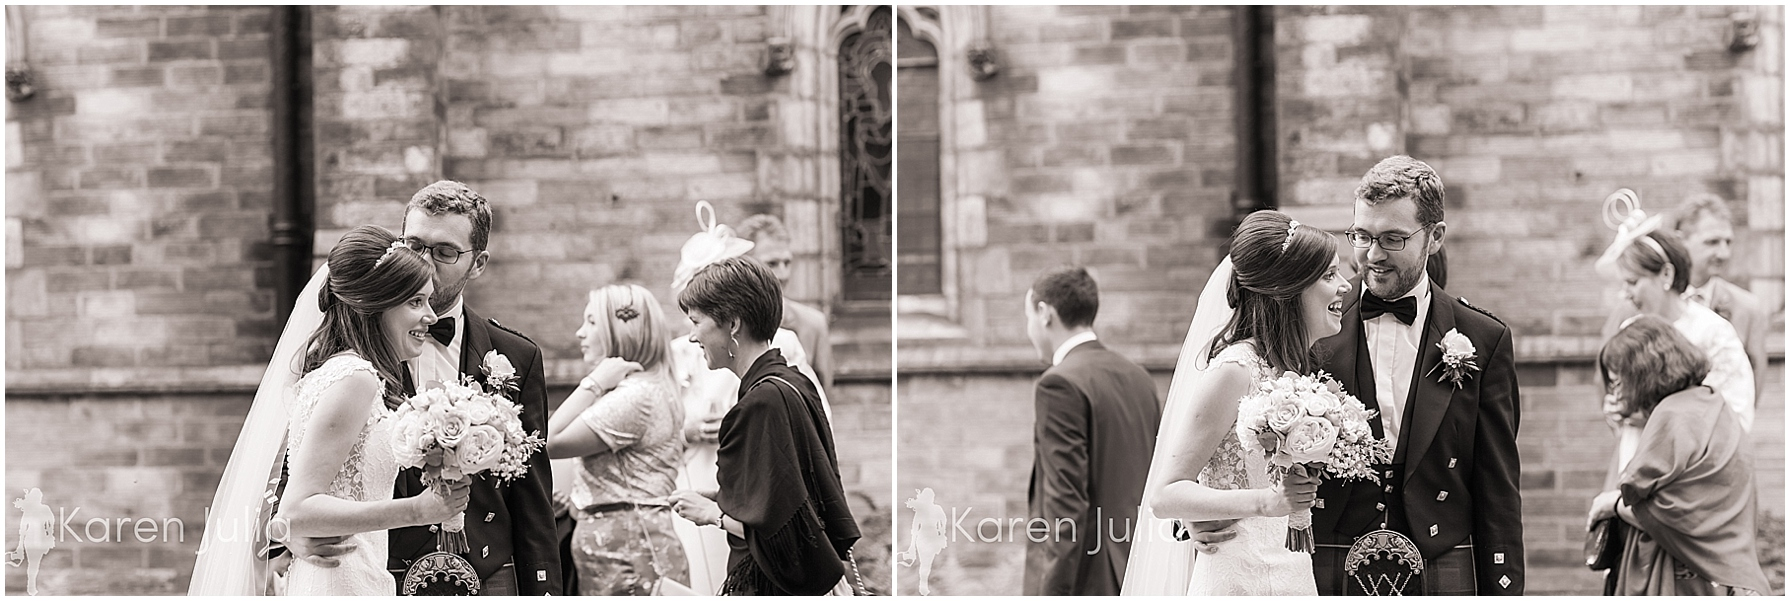 Documentary wedding photography outside church